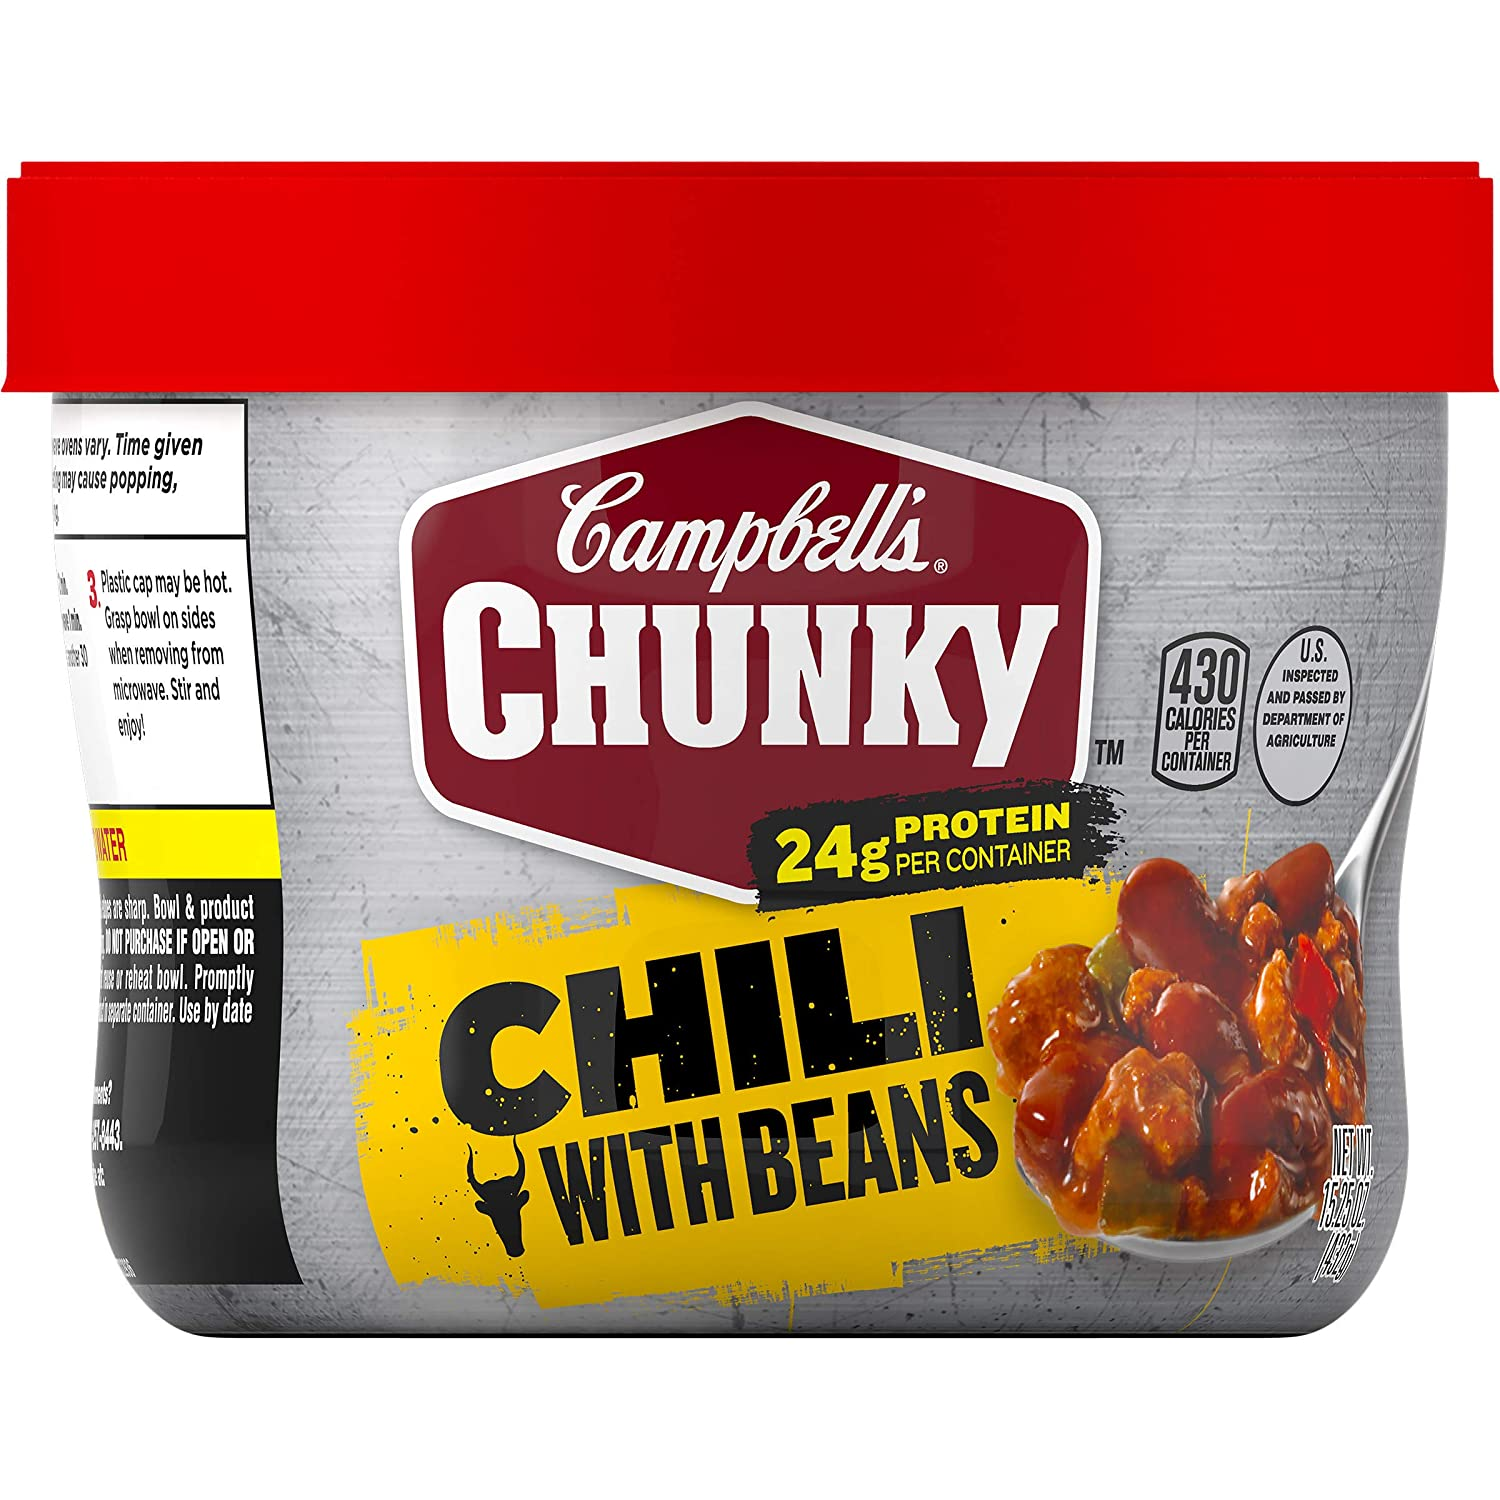 Campbell's ChunkyChili with Beans, 15.25 oz. Microwavable Bowl (Pack of 8)